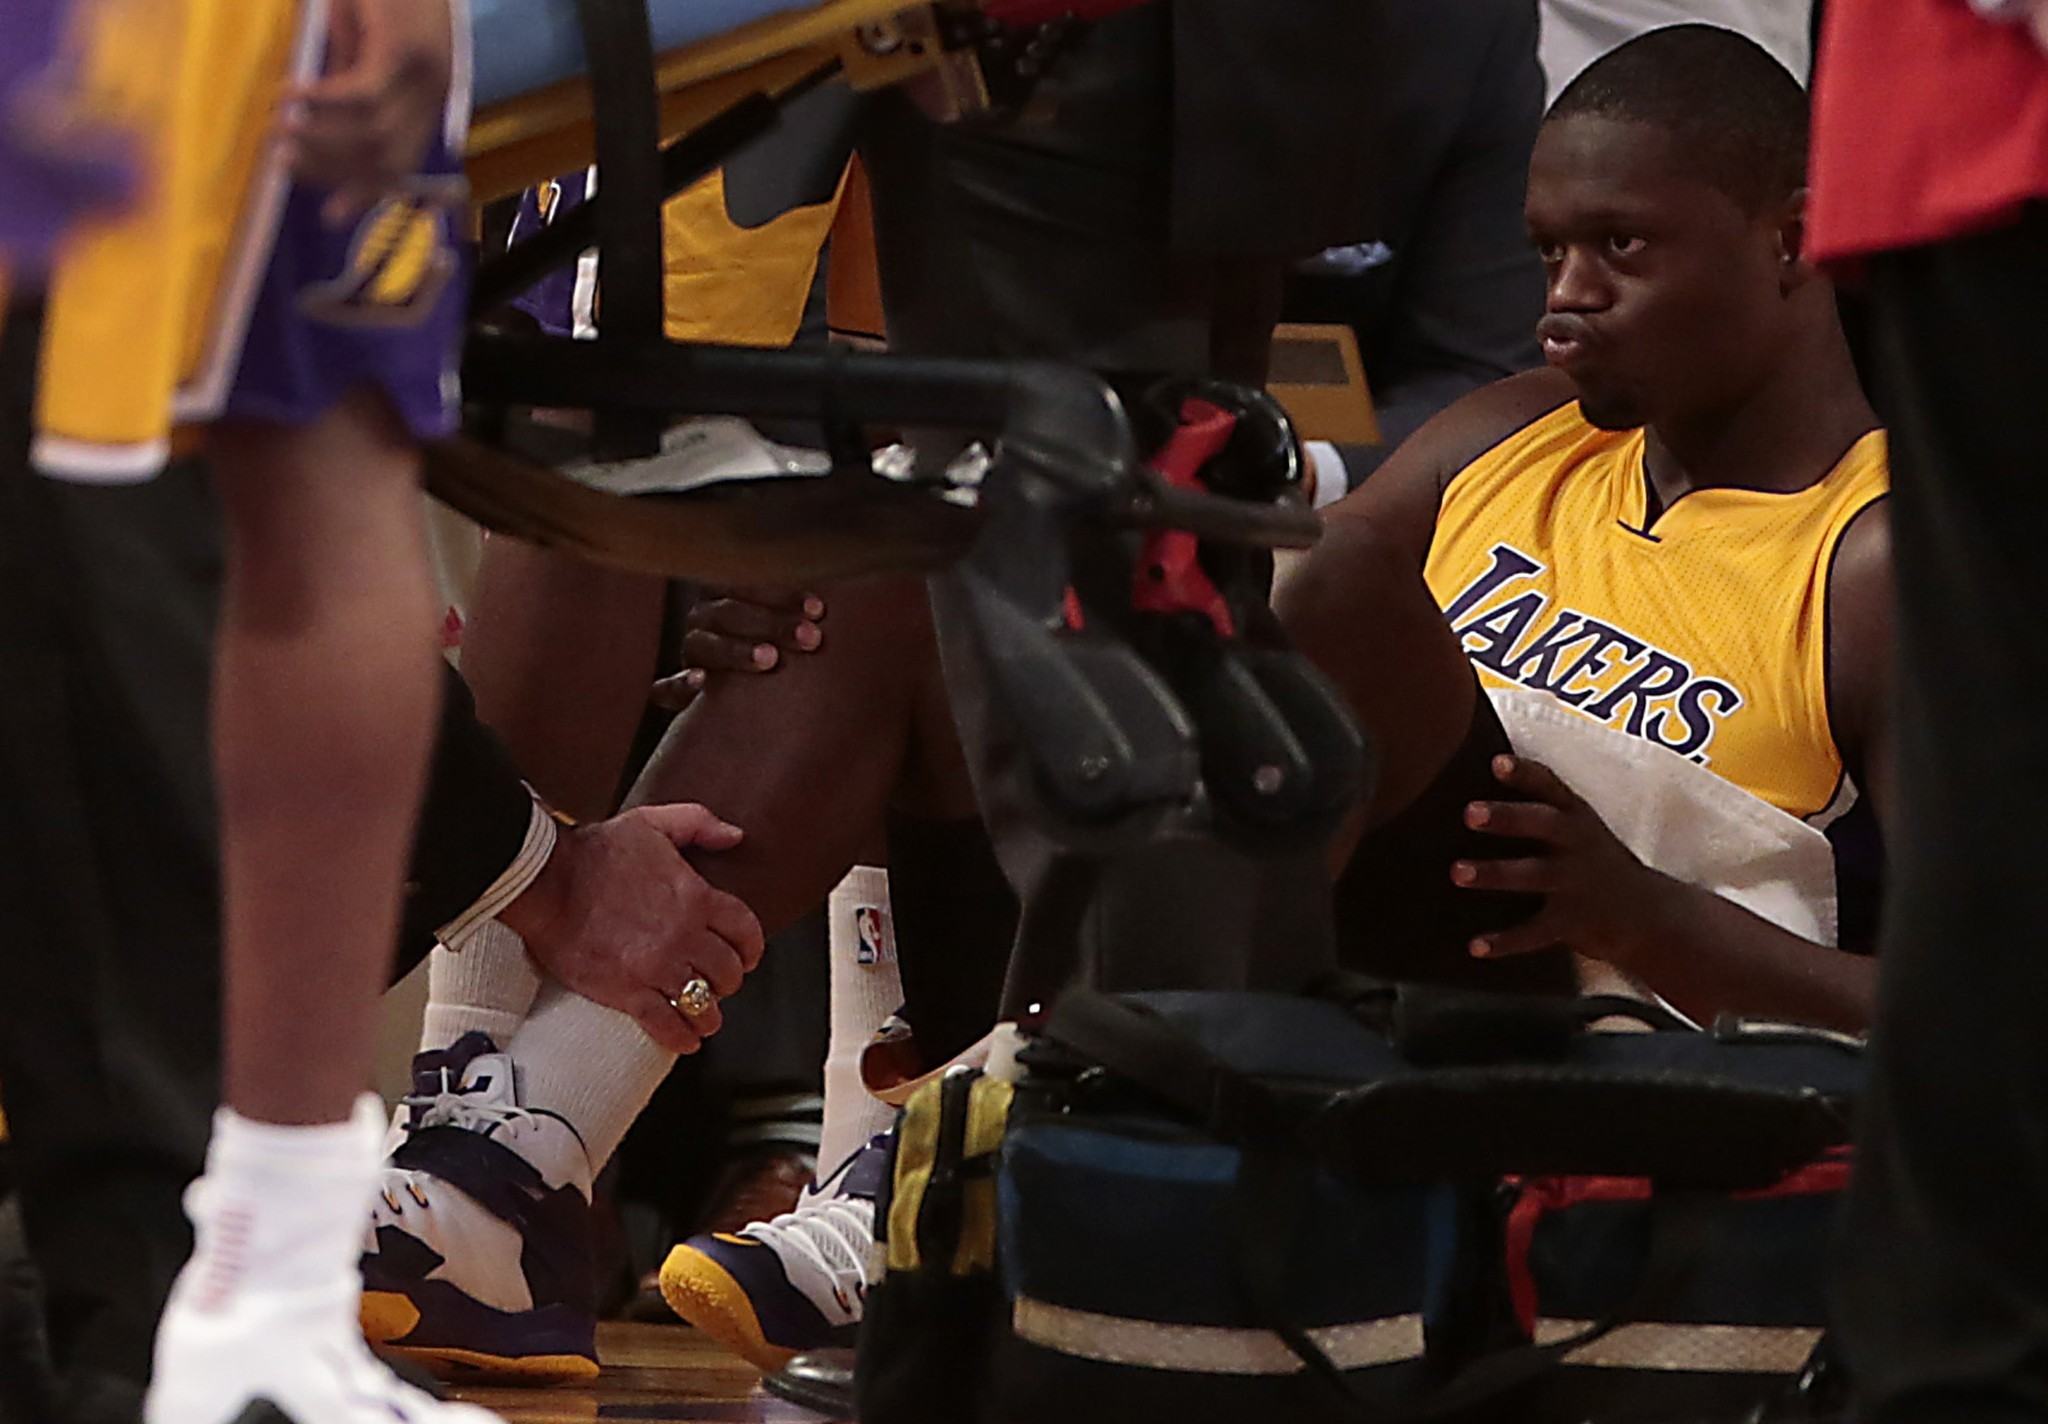 Lakers rookie Julius Randle suffers fractured tibia in NBA debut